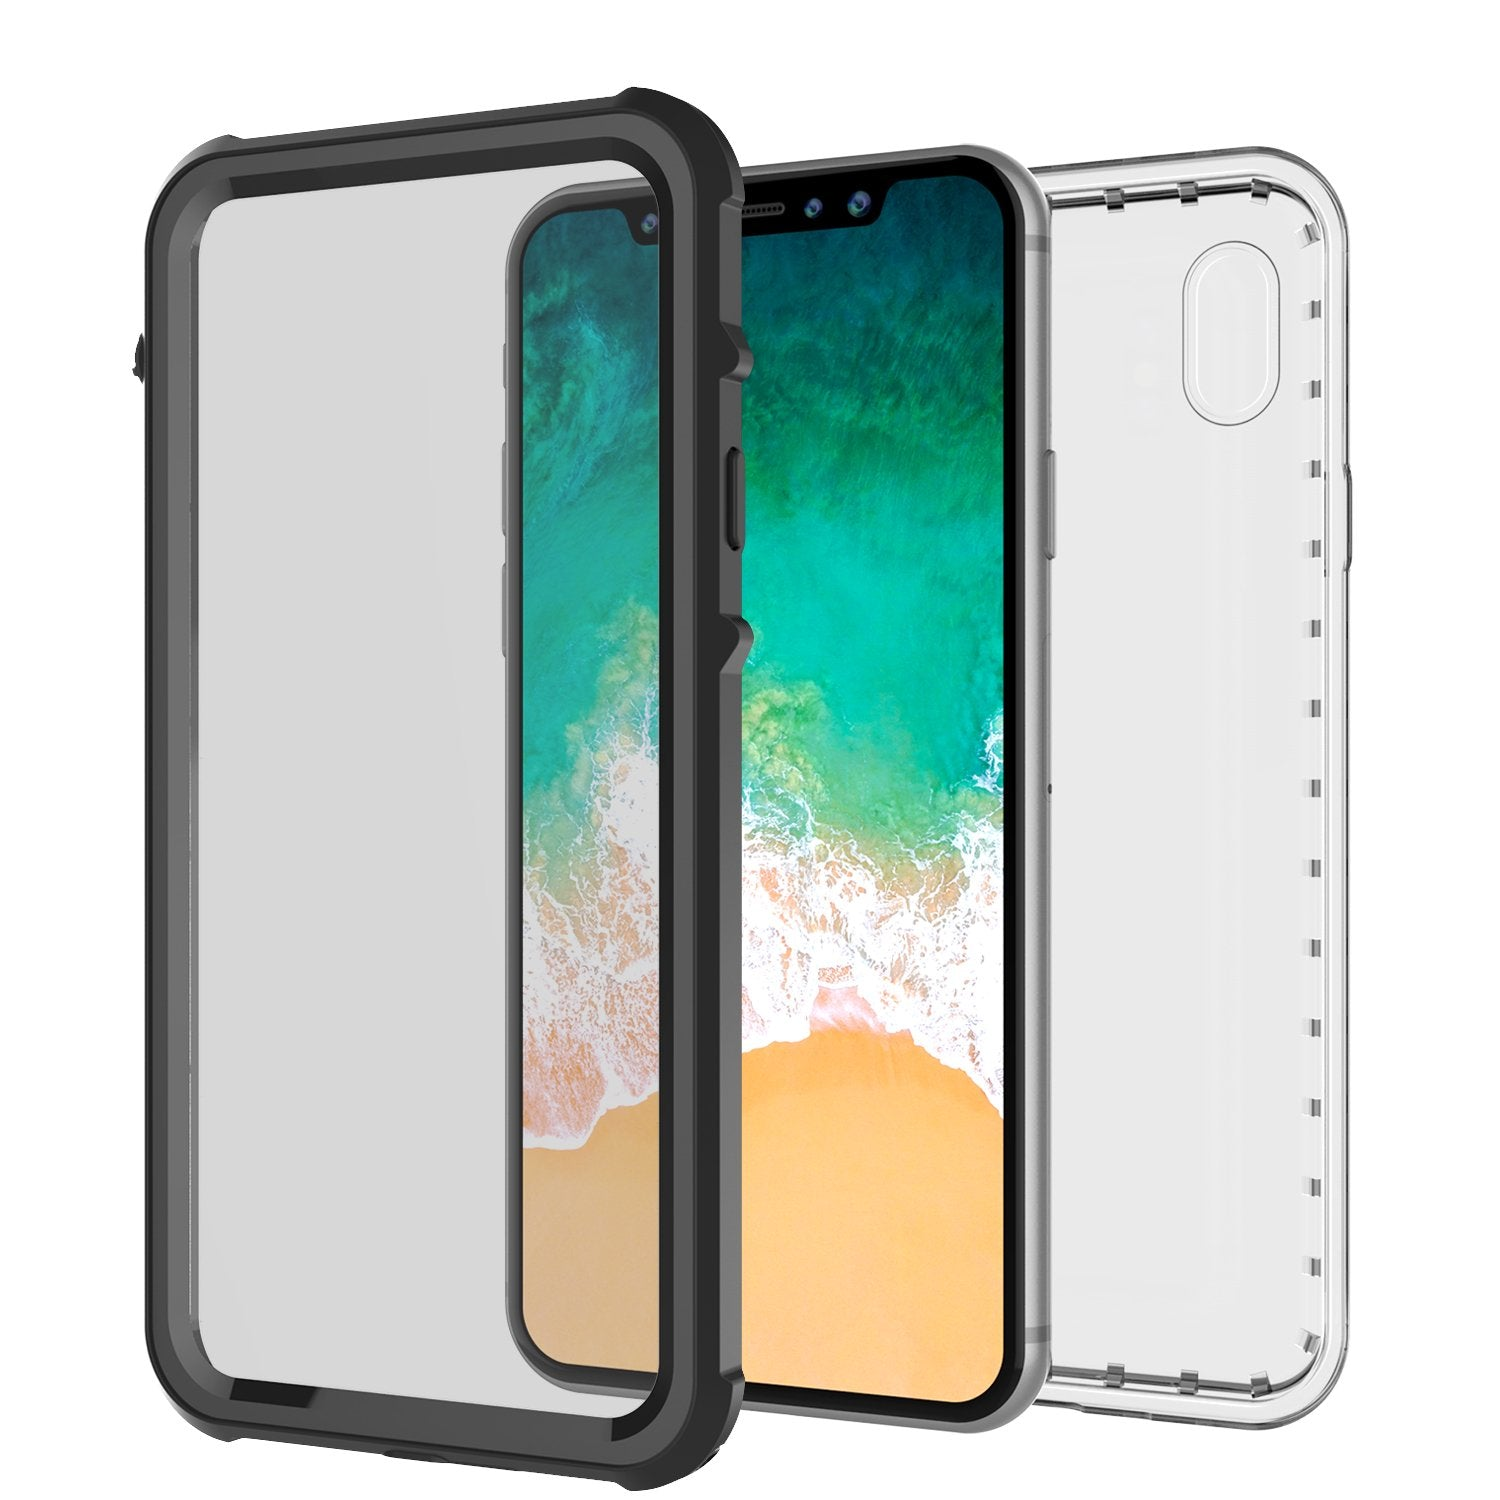 iPhone X Case, PUNKCase [CRYSTAL SERIES] Protective IP68 Certified Cover W/ Attached Screen Protector - DustPROOF, ShockPROOF, SnowPROOF - Ultra Slim Fit for Apple iPhone 10 [BLACK]